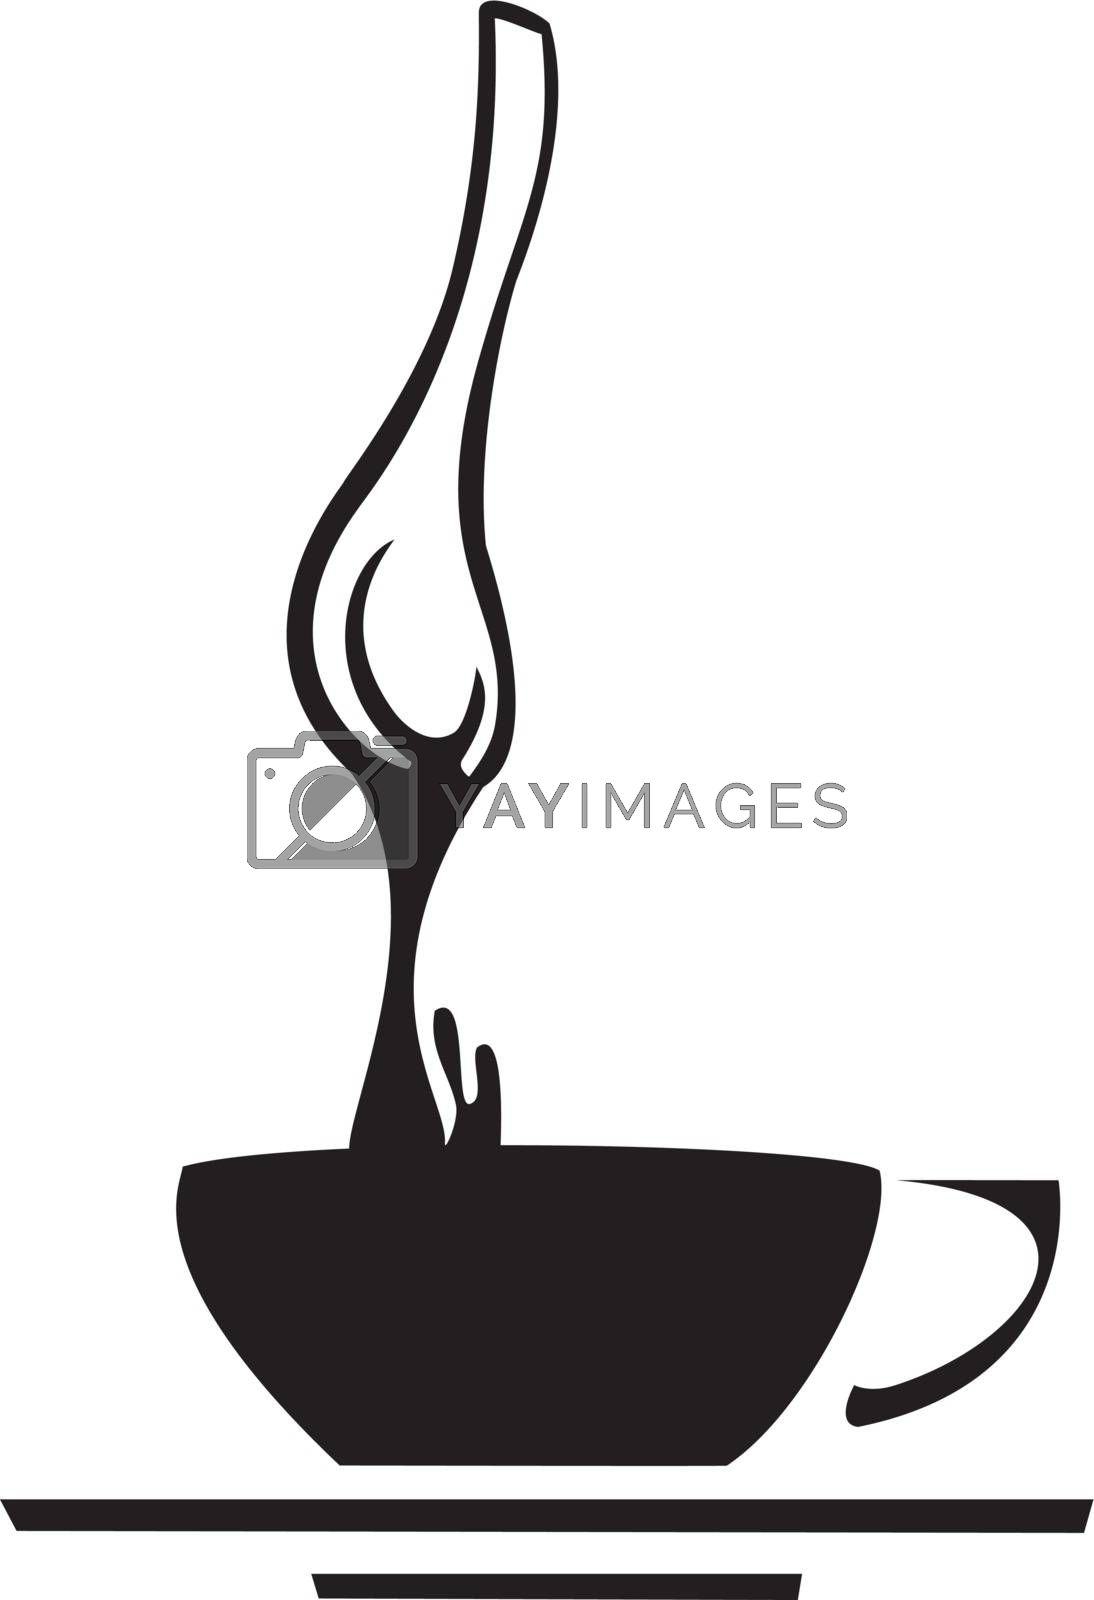 Spoon dipping into a cup of black coffee.